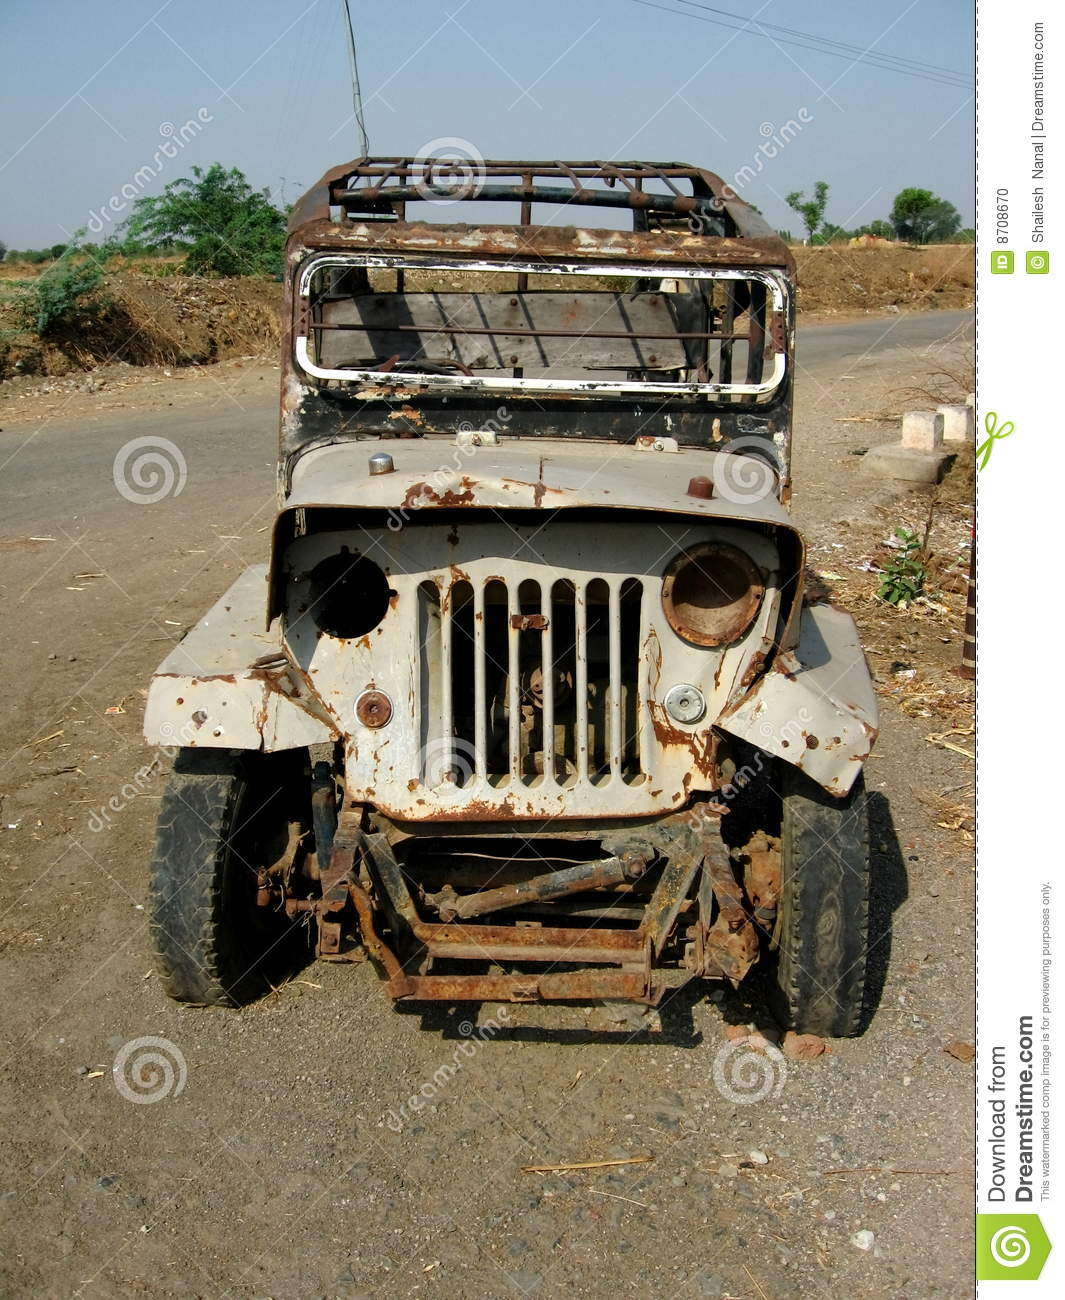 Jeep Wrangler Unlimited Towing Capacity >> Broken Jeep-I stock photo. Image of maintenance, vehicle - 8708670